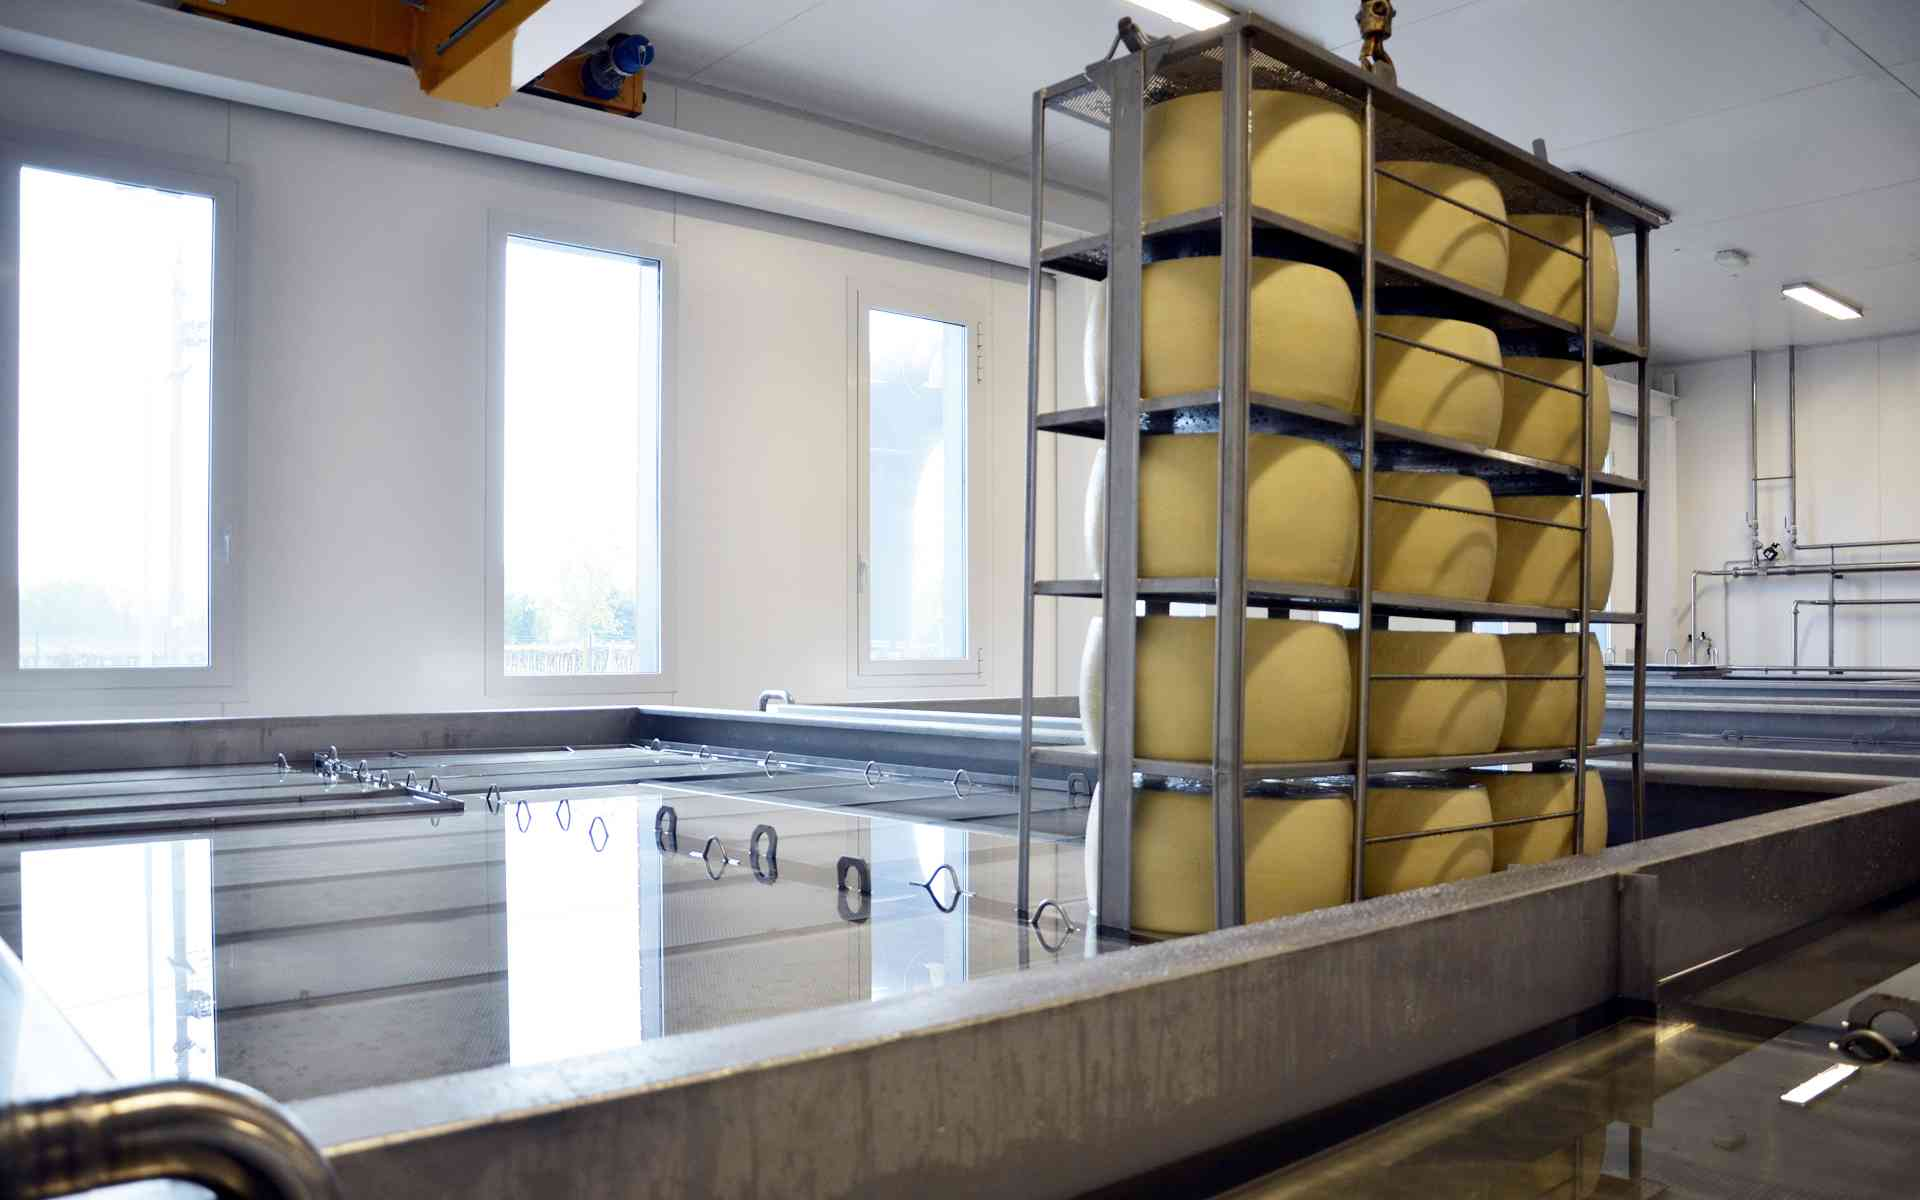 Equipment for Dairies and Mini dairies